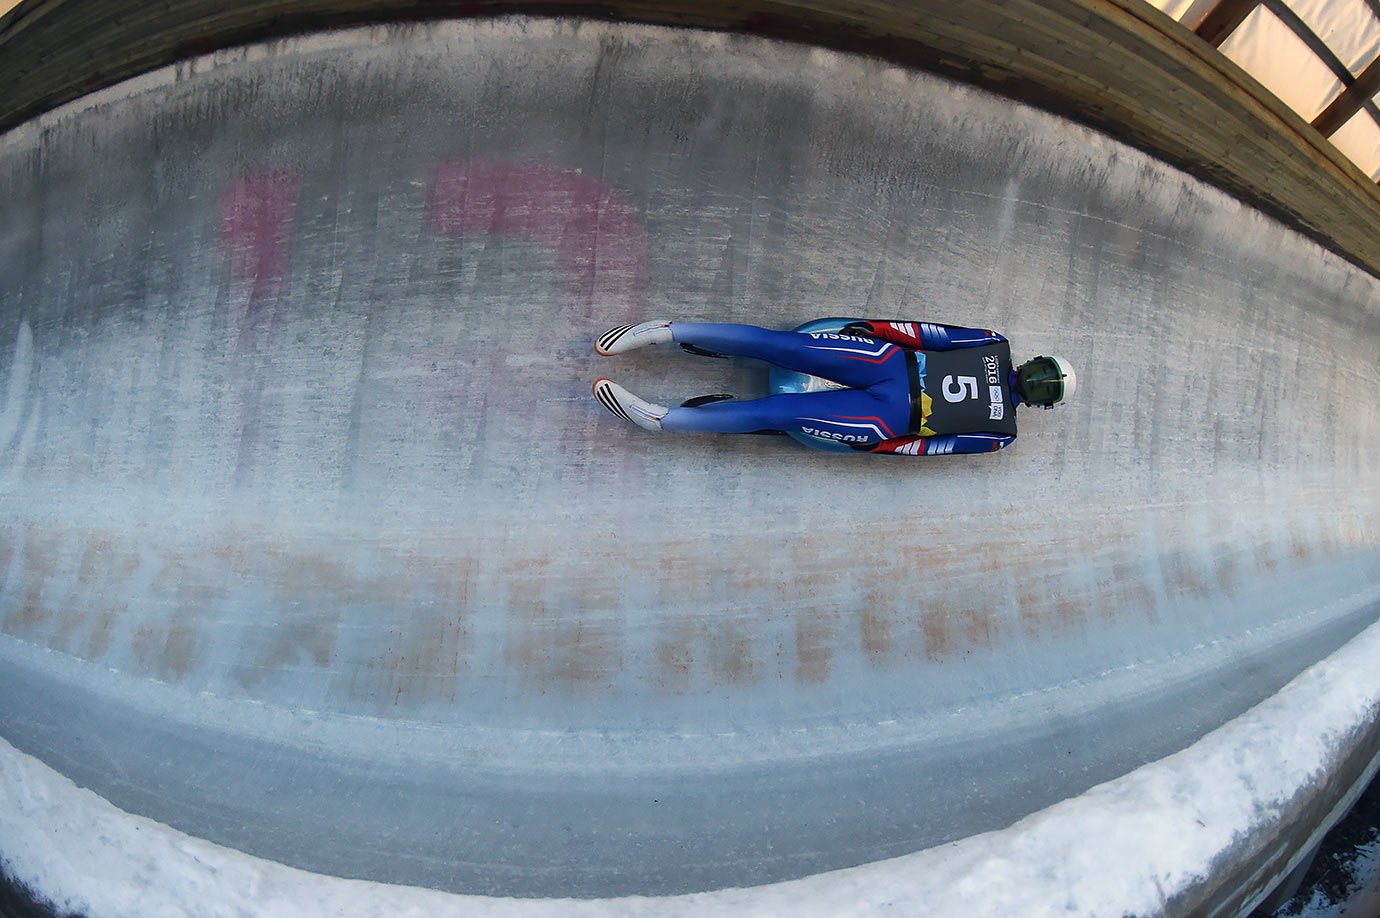 Evgenii Petrov (RUS) competes in the Men's Luge Singles at the Lillehammer Olympic Sliding Center on Feb. 14, 2016 during the Winter Youth Olympic Games in Lillehammer, Norway.